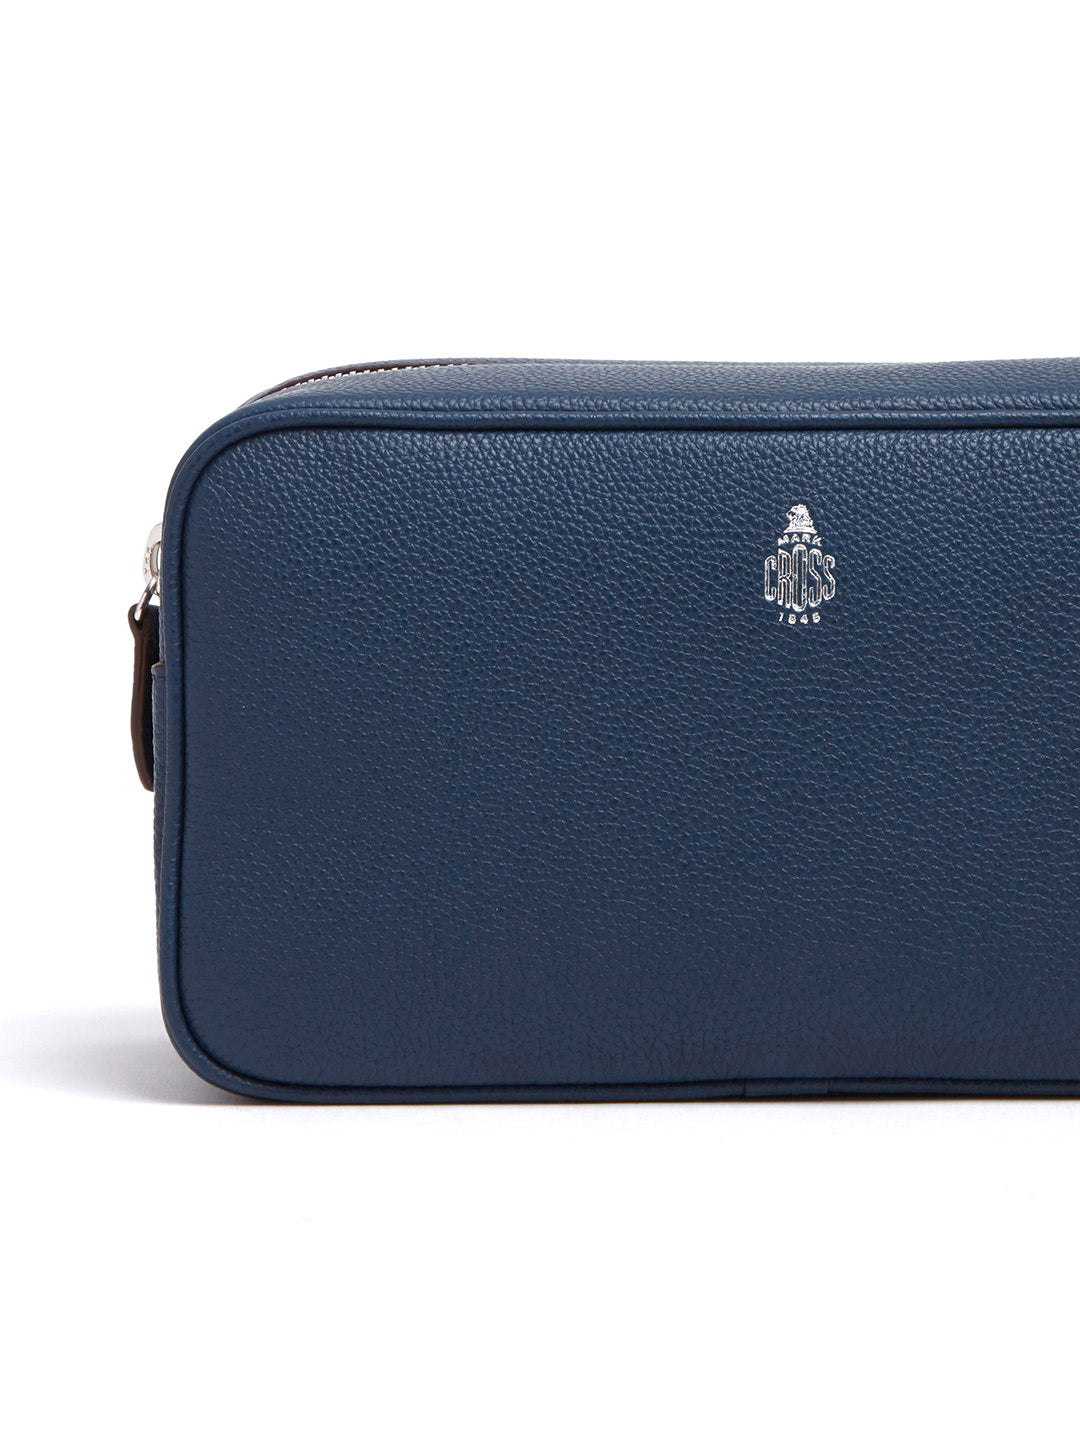 Mark Cross Leather Wash Bag Tumbled Grain Navy Detail